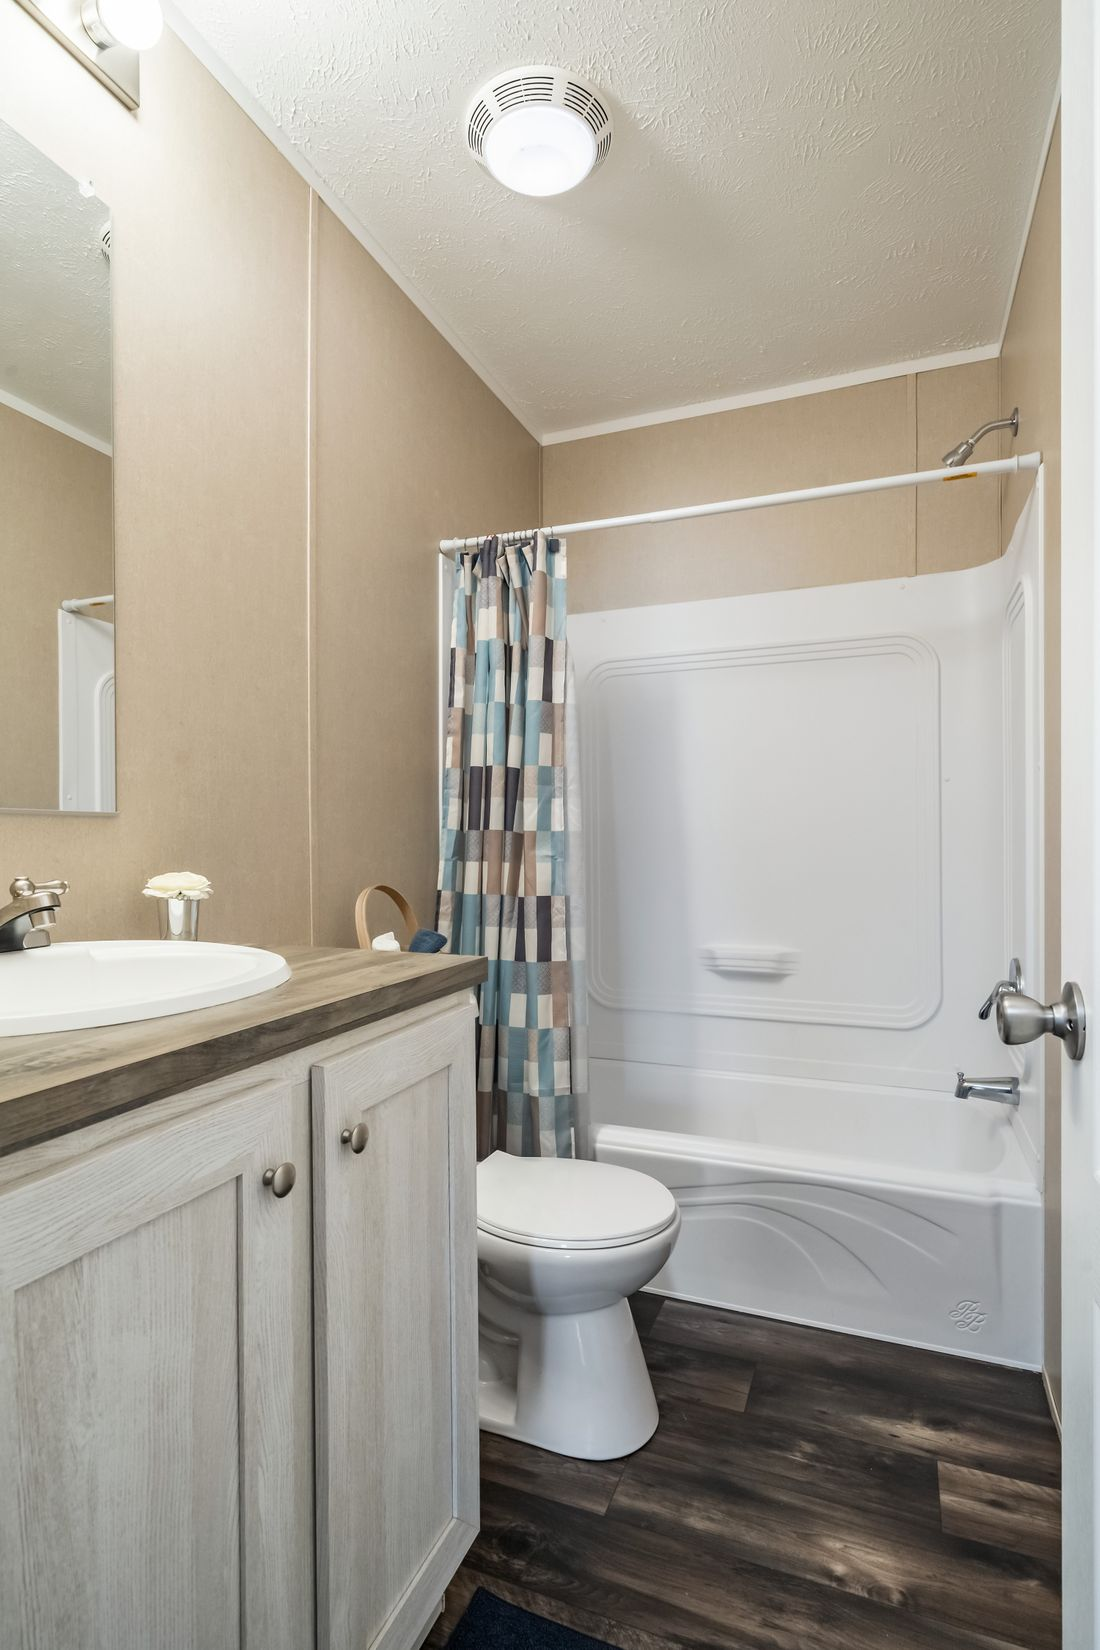 The ULTRA PRO 56A Guest Bathroom. This Manufactured Mobile Home features 3 bedrooms and 2 baths.